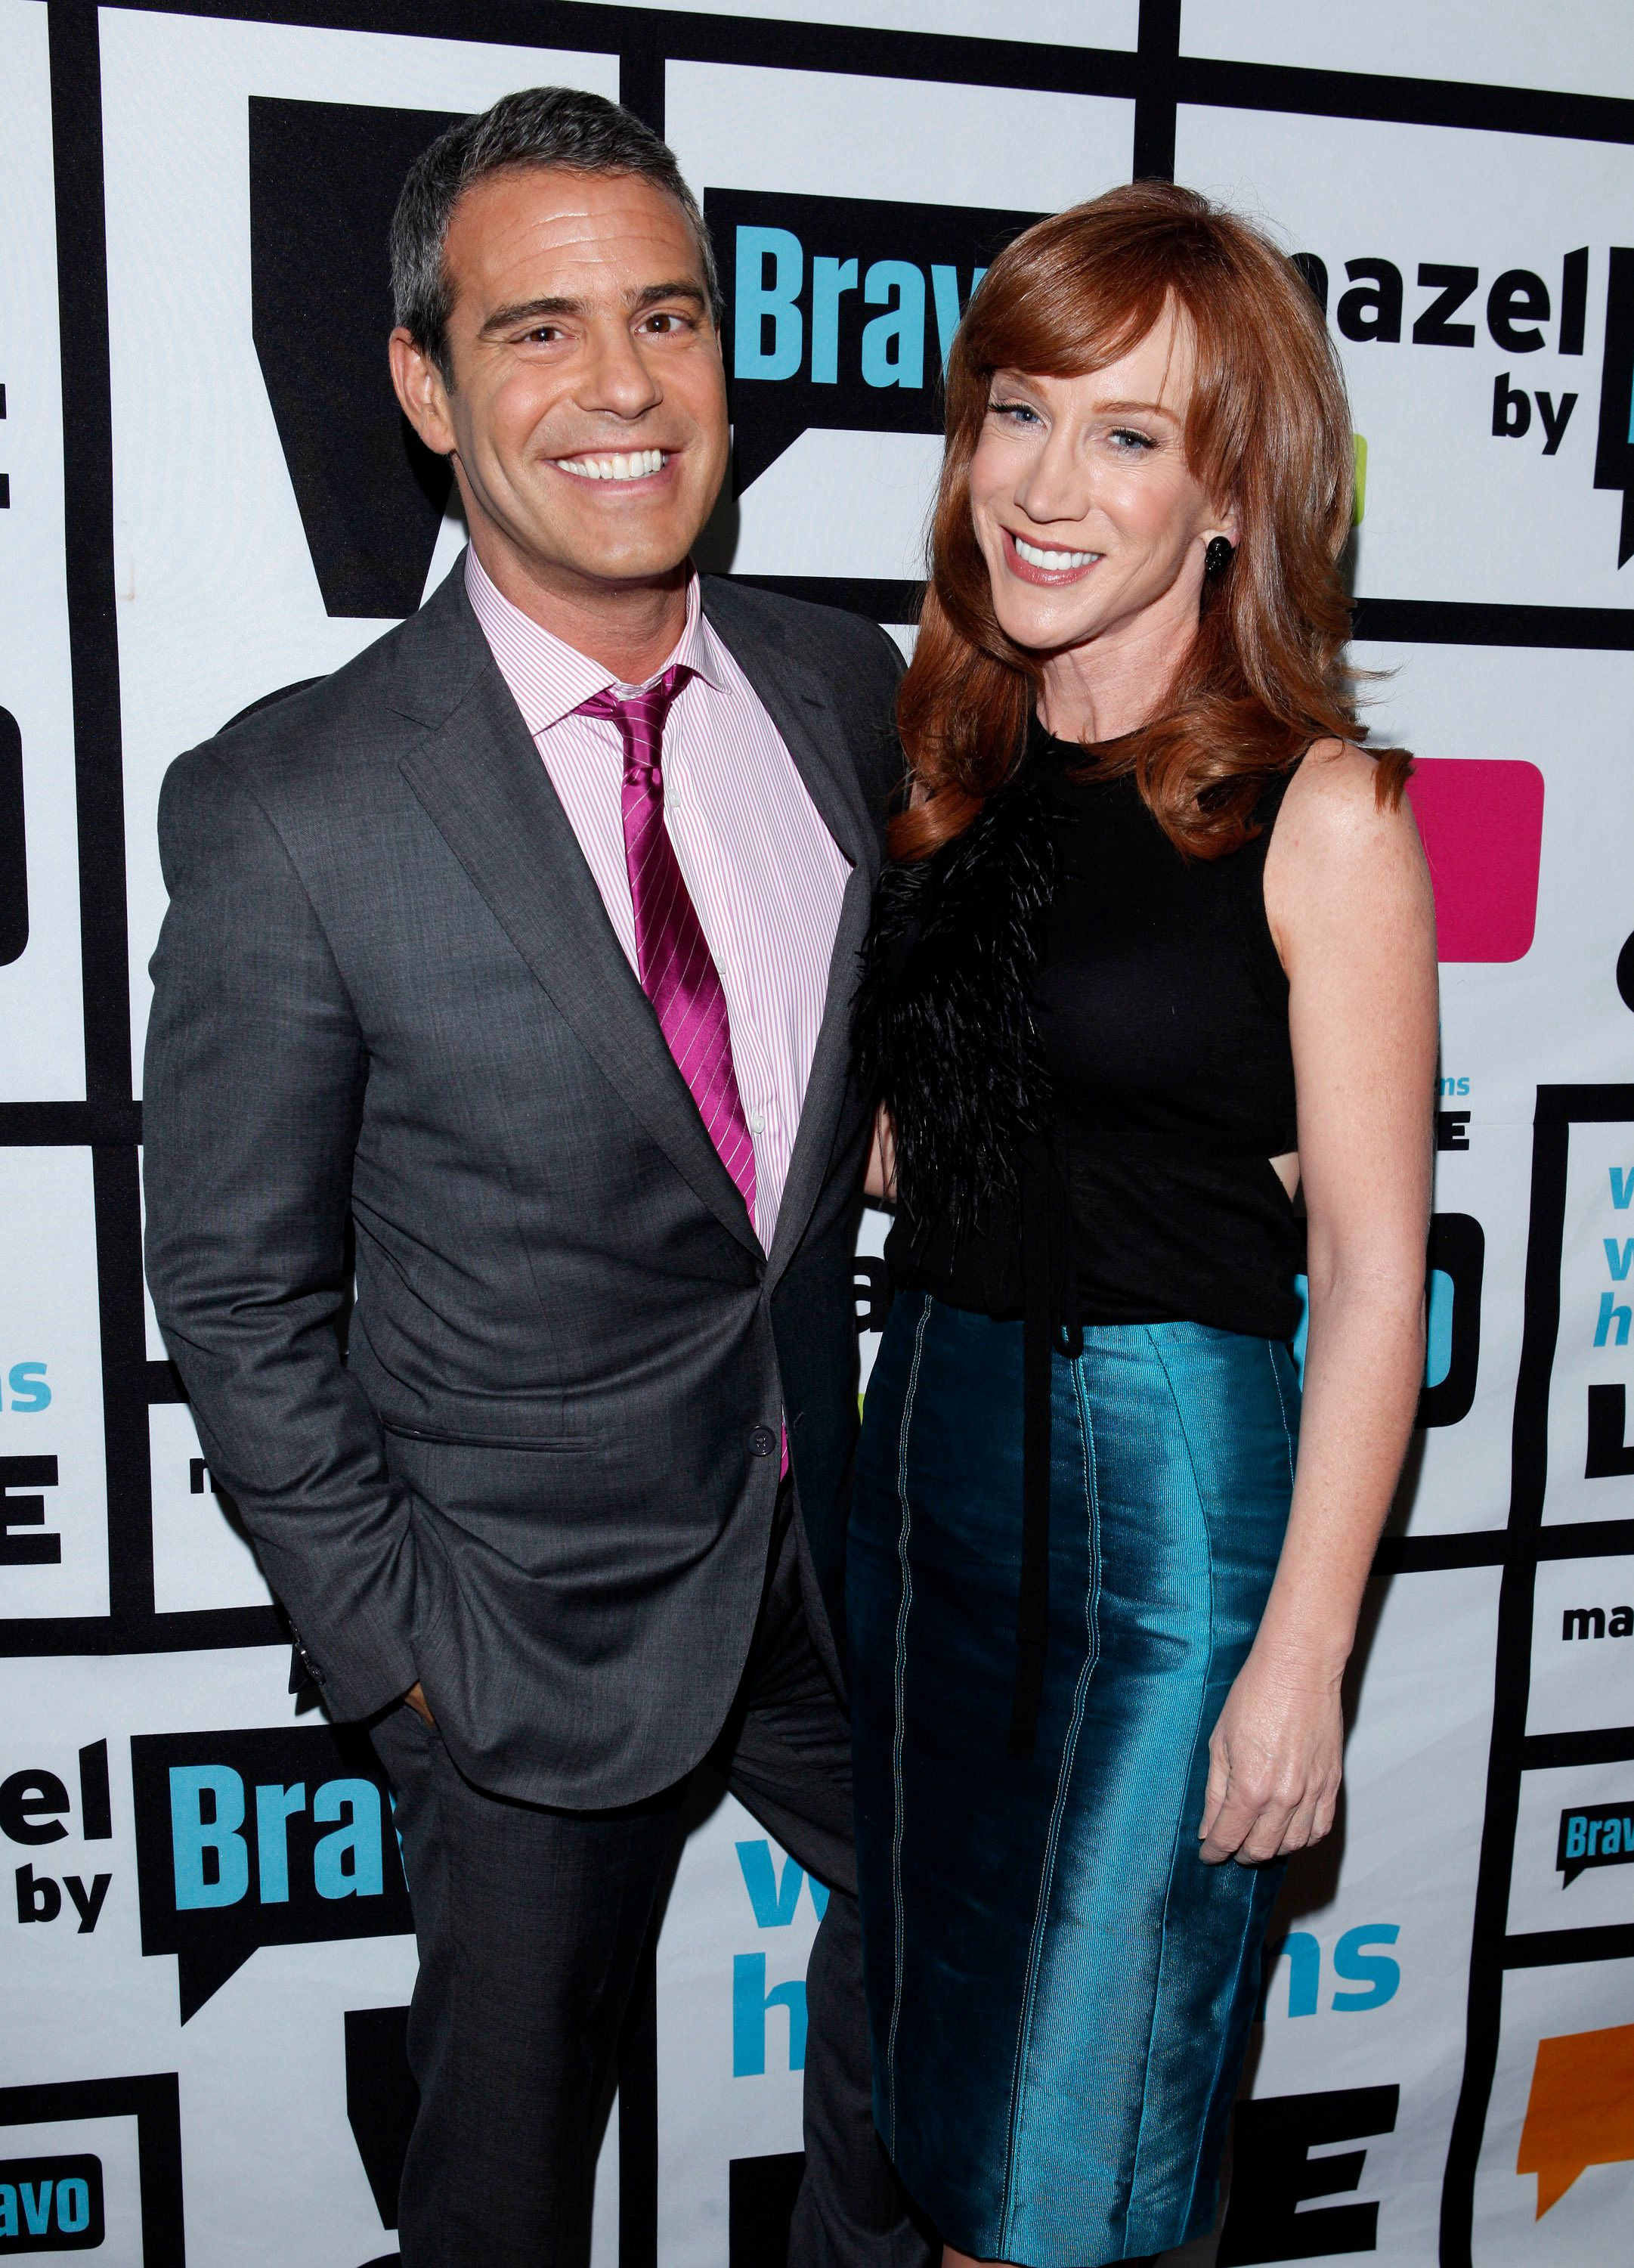 Andy Cohen Ends Feud With Kathy Griffin: 'I've Moved On'